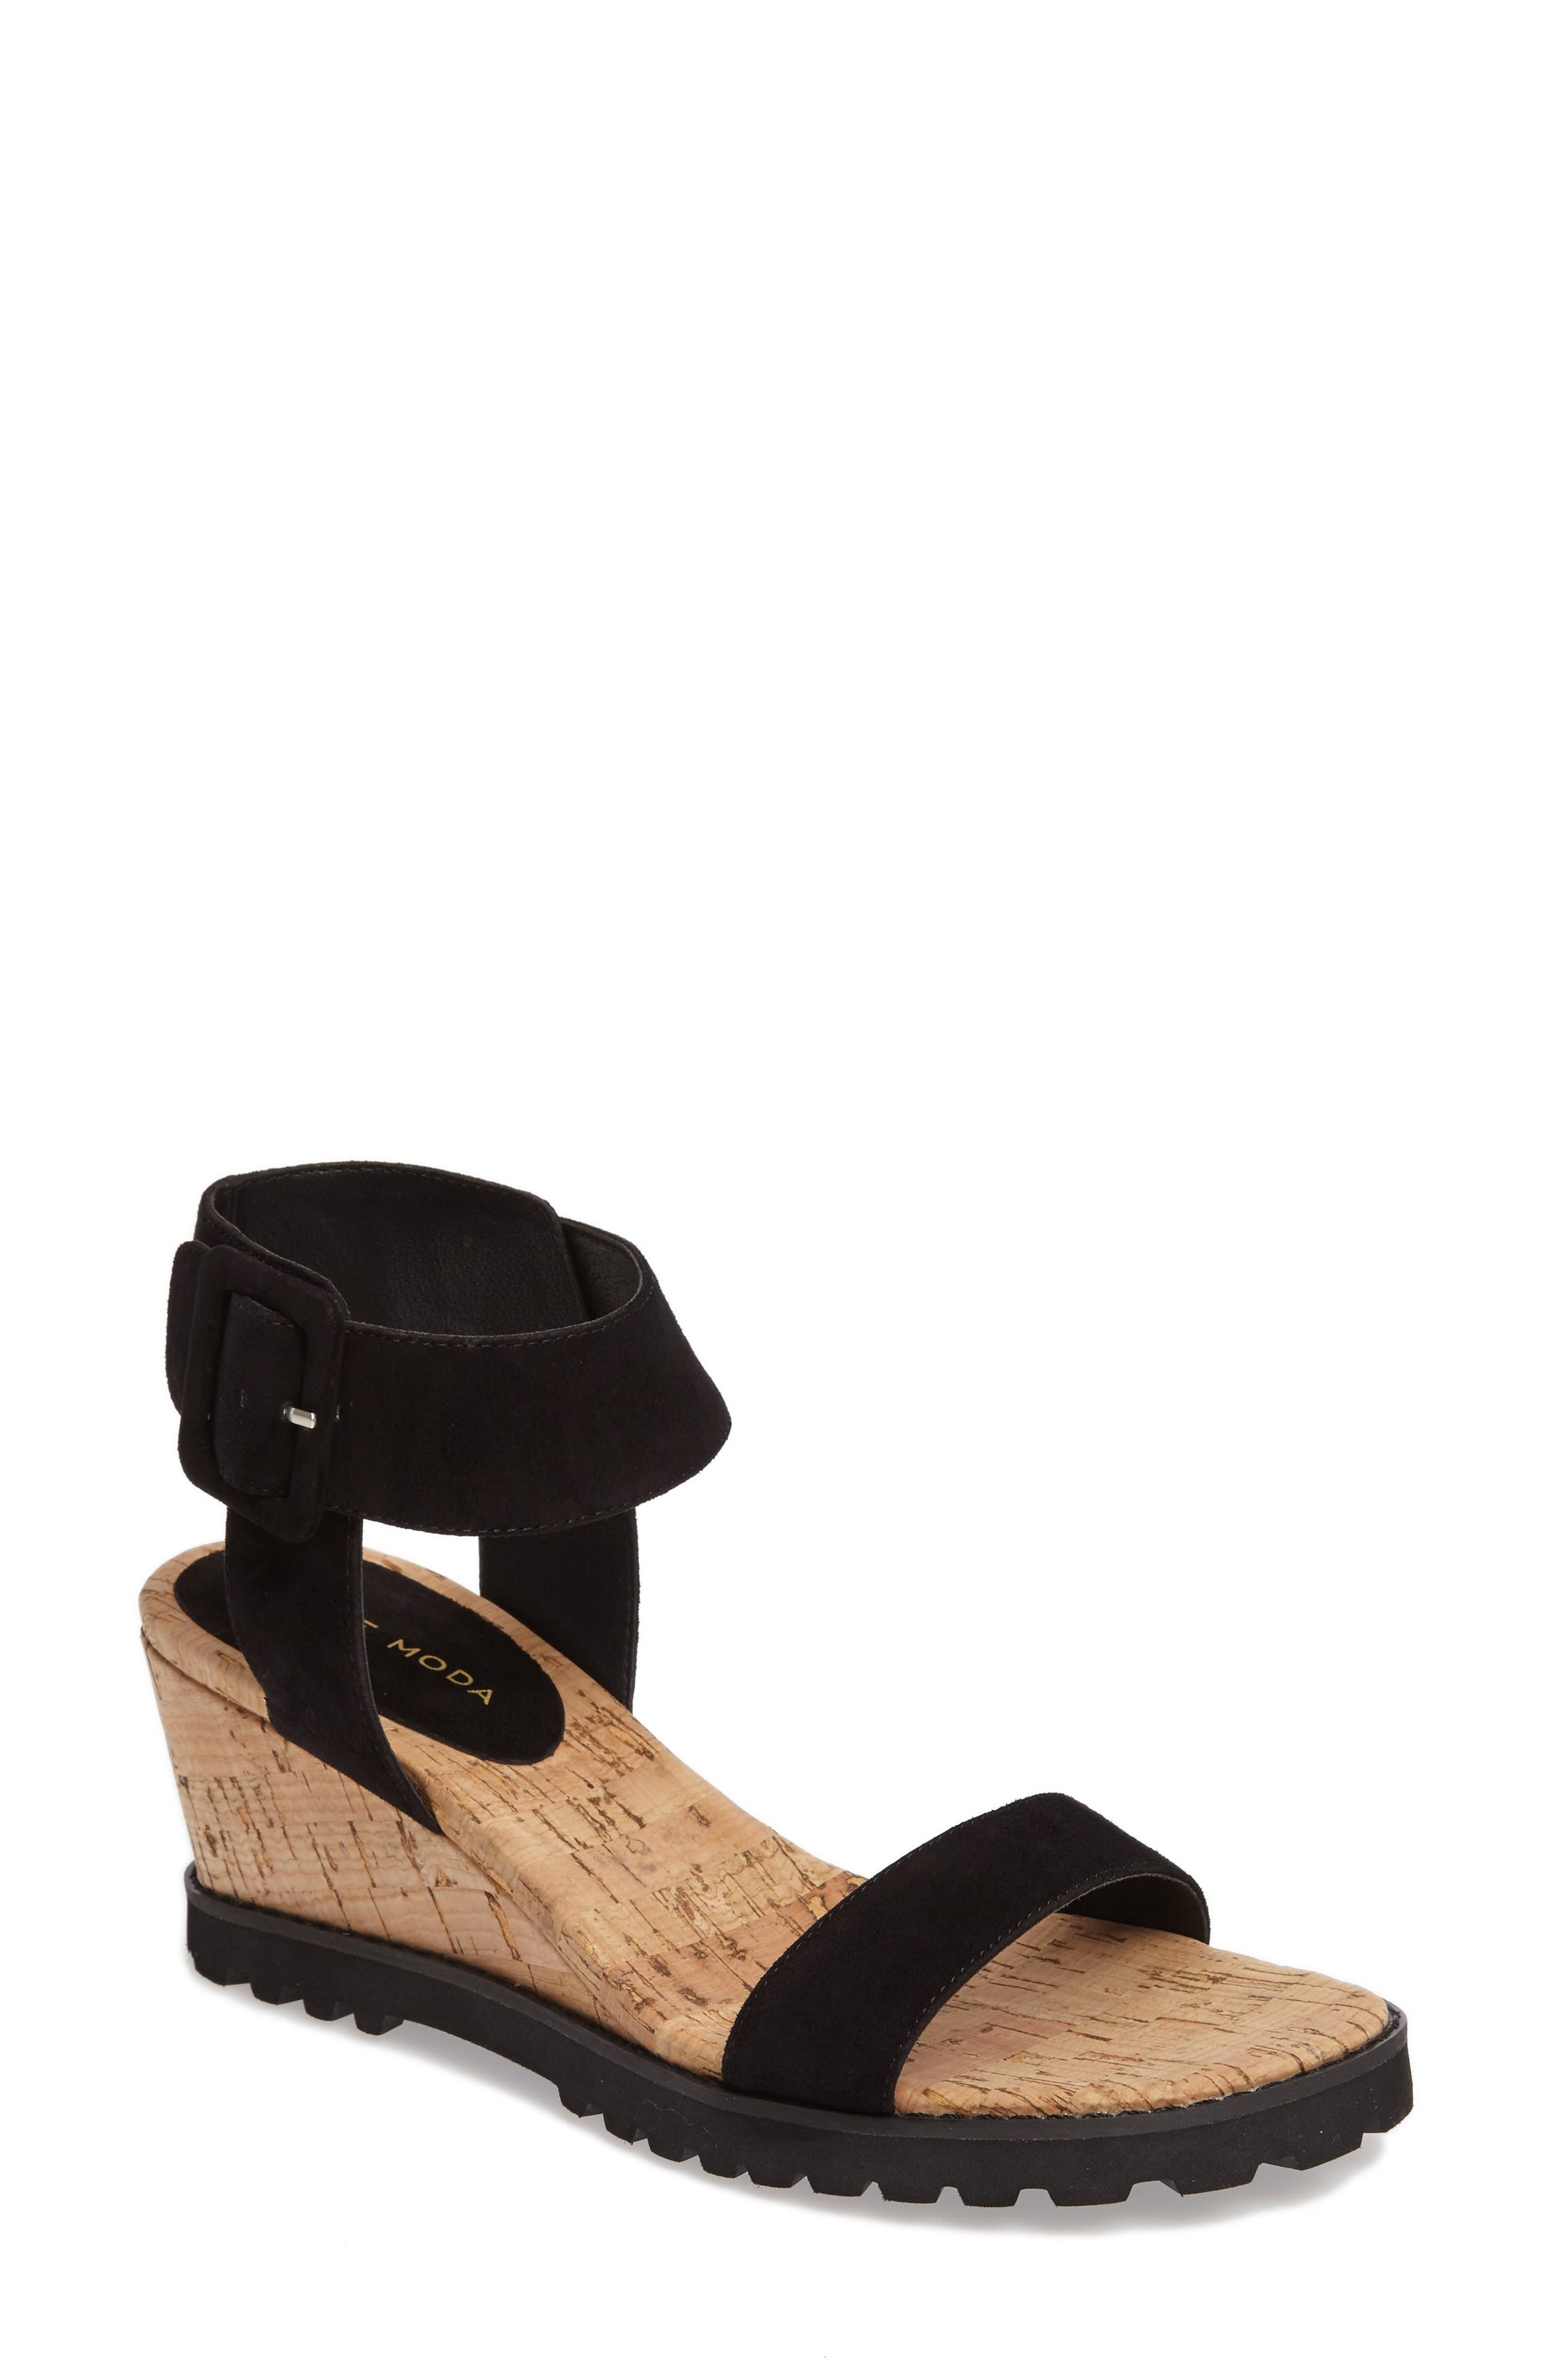 Rian Wedge Sandal,                         Main,                         color, Black Leather